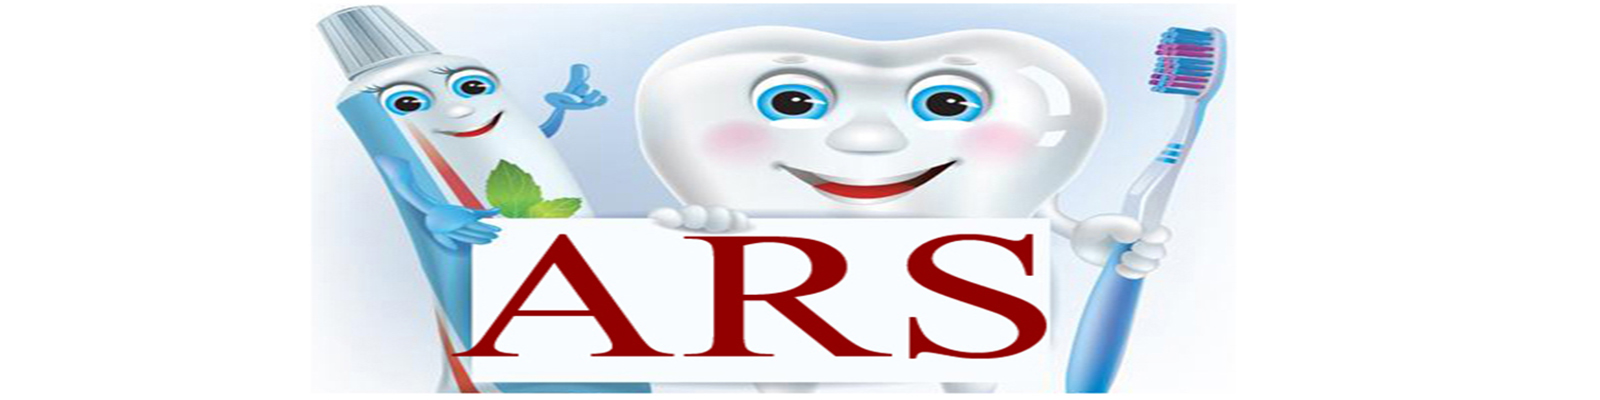 ARS Dental Clinic